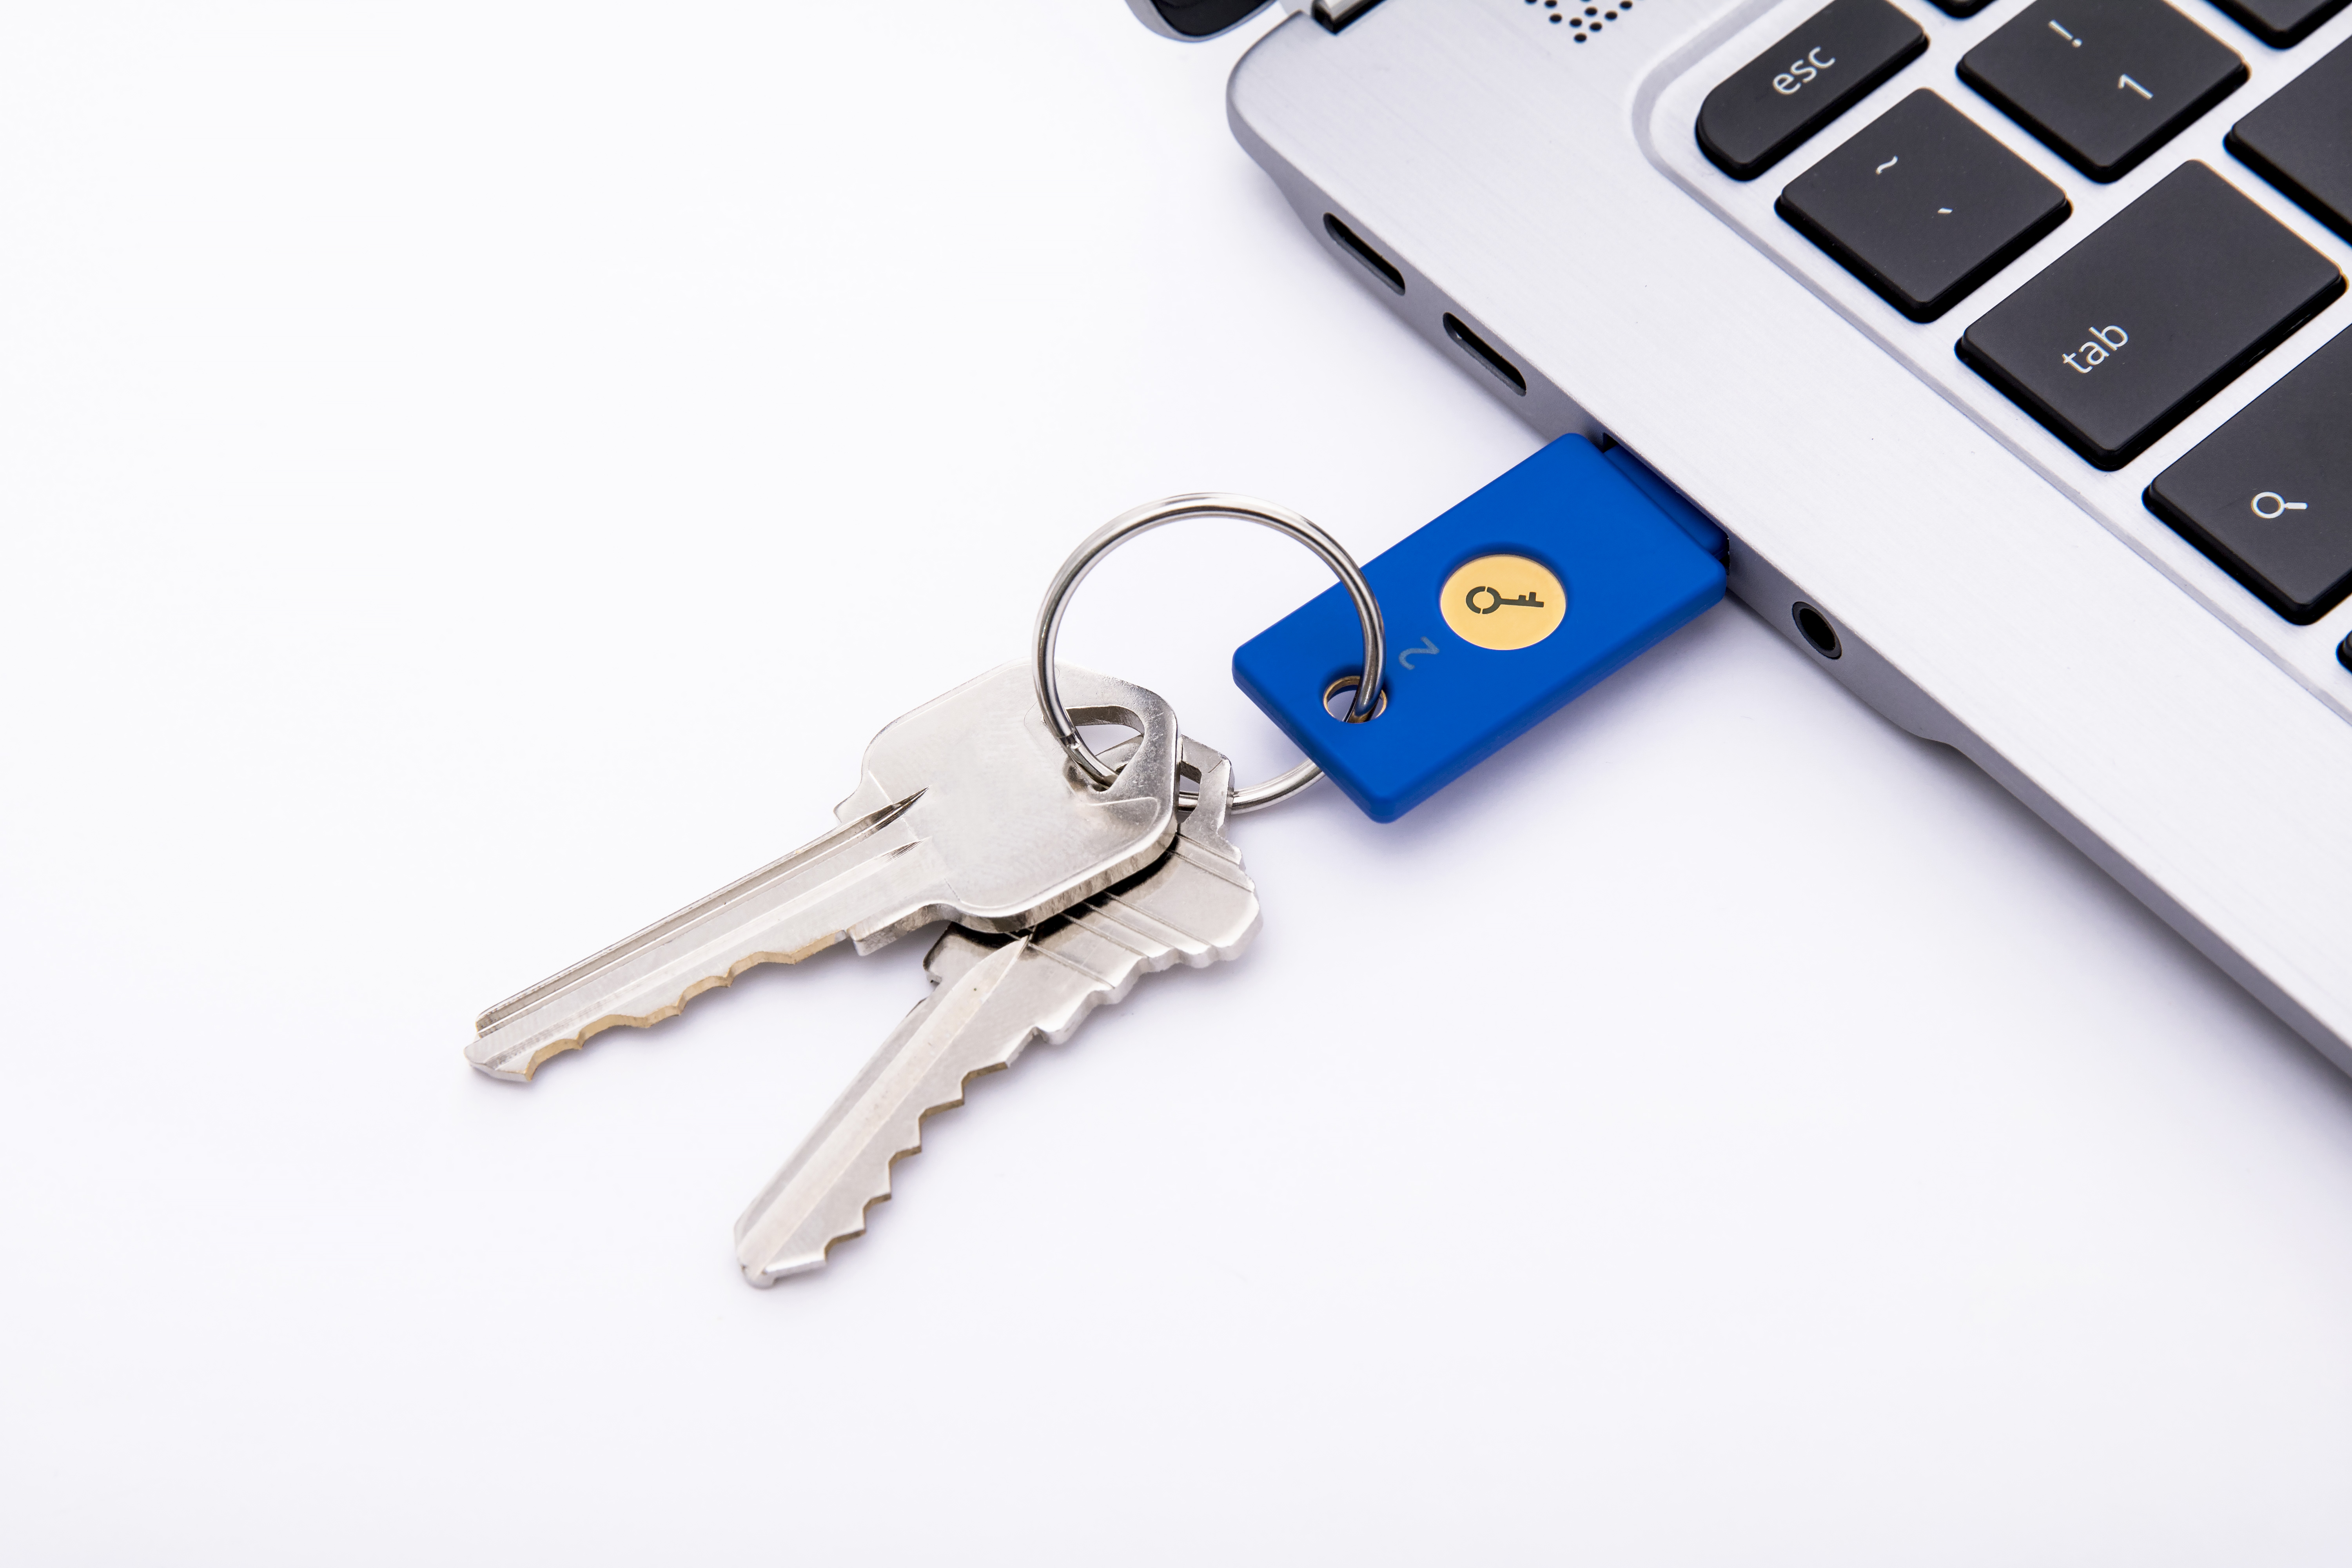 FIDO & W3C Debut New, Safer Web Authentication Standard